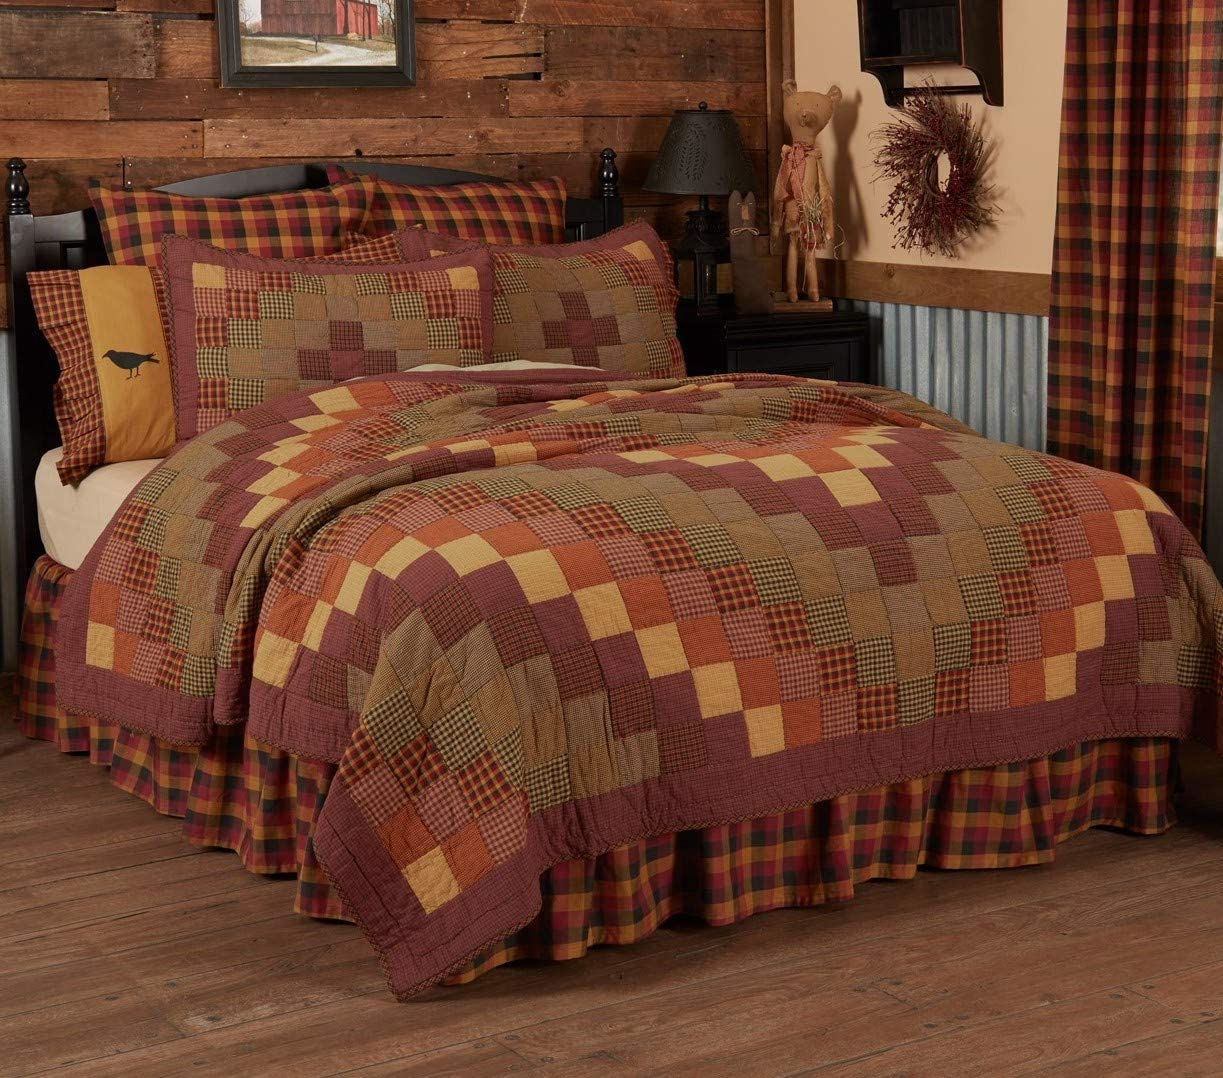 VHC Brands Rustic & Lodge Primitive Bedding-Heritage Farms Quilt, Luxury King, Burgundy Red